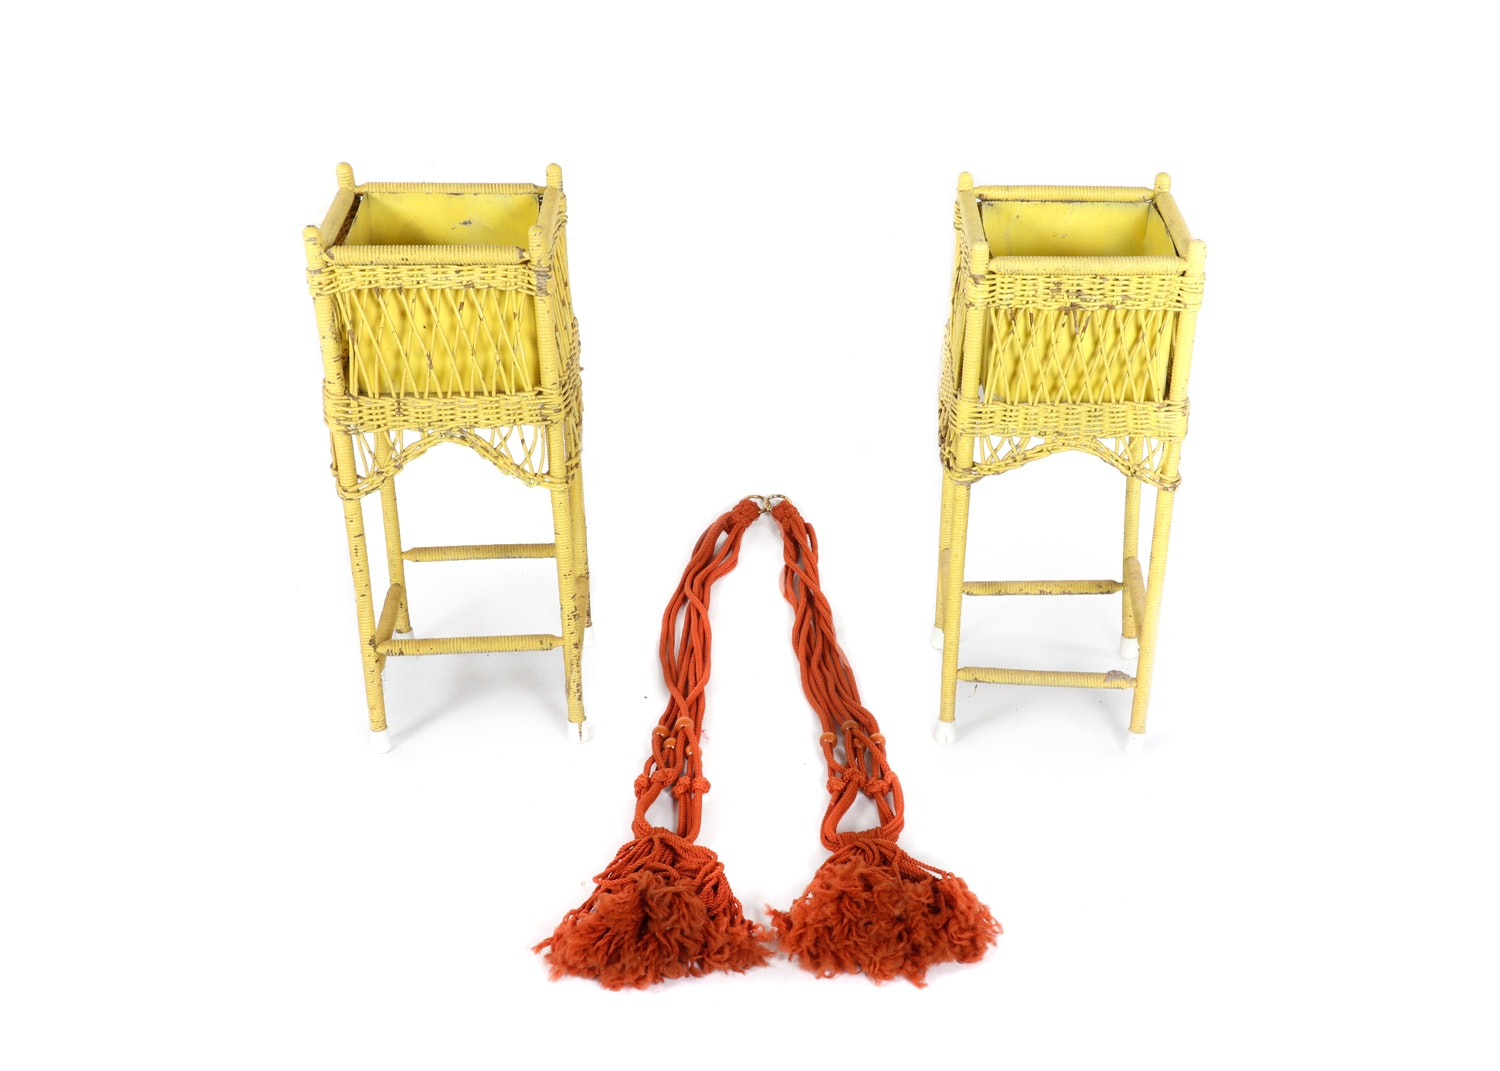 Yellow Wicker Box Planters and Macrame Plant Hangers